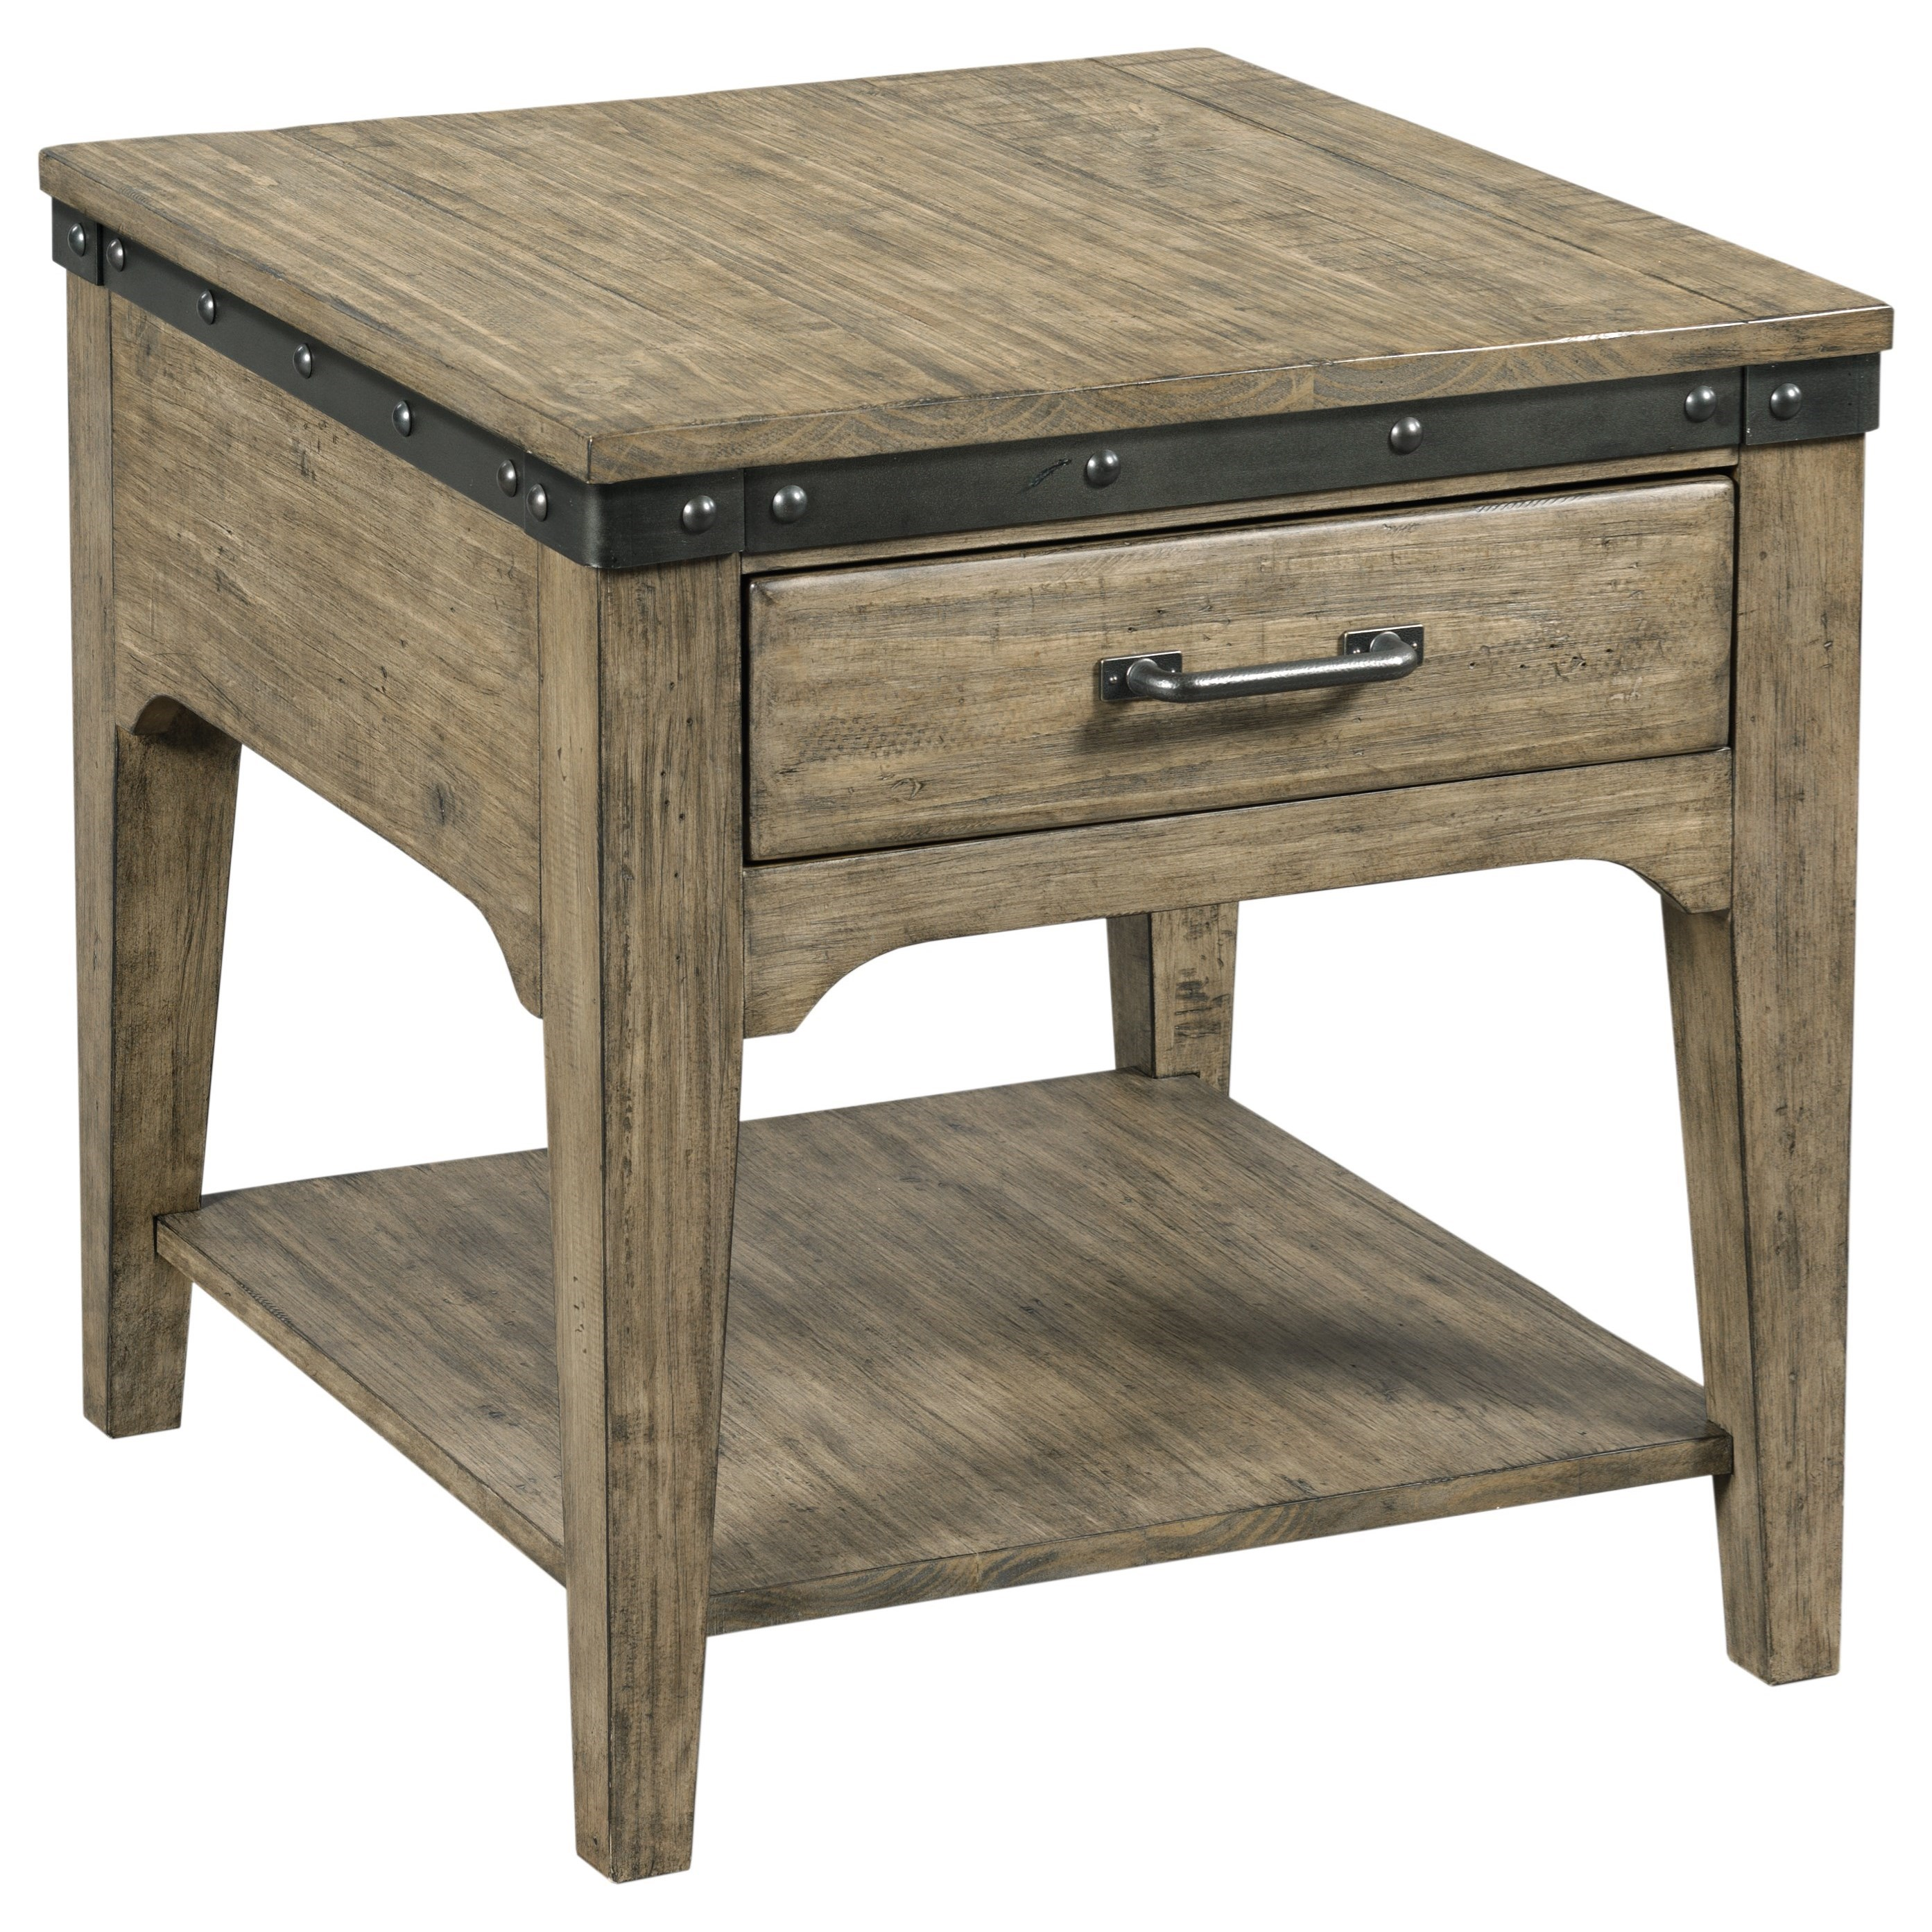 Plank Road Artisans Rectangular Drawer End Table        at Stoney Creek Furniture